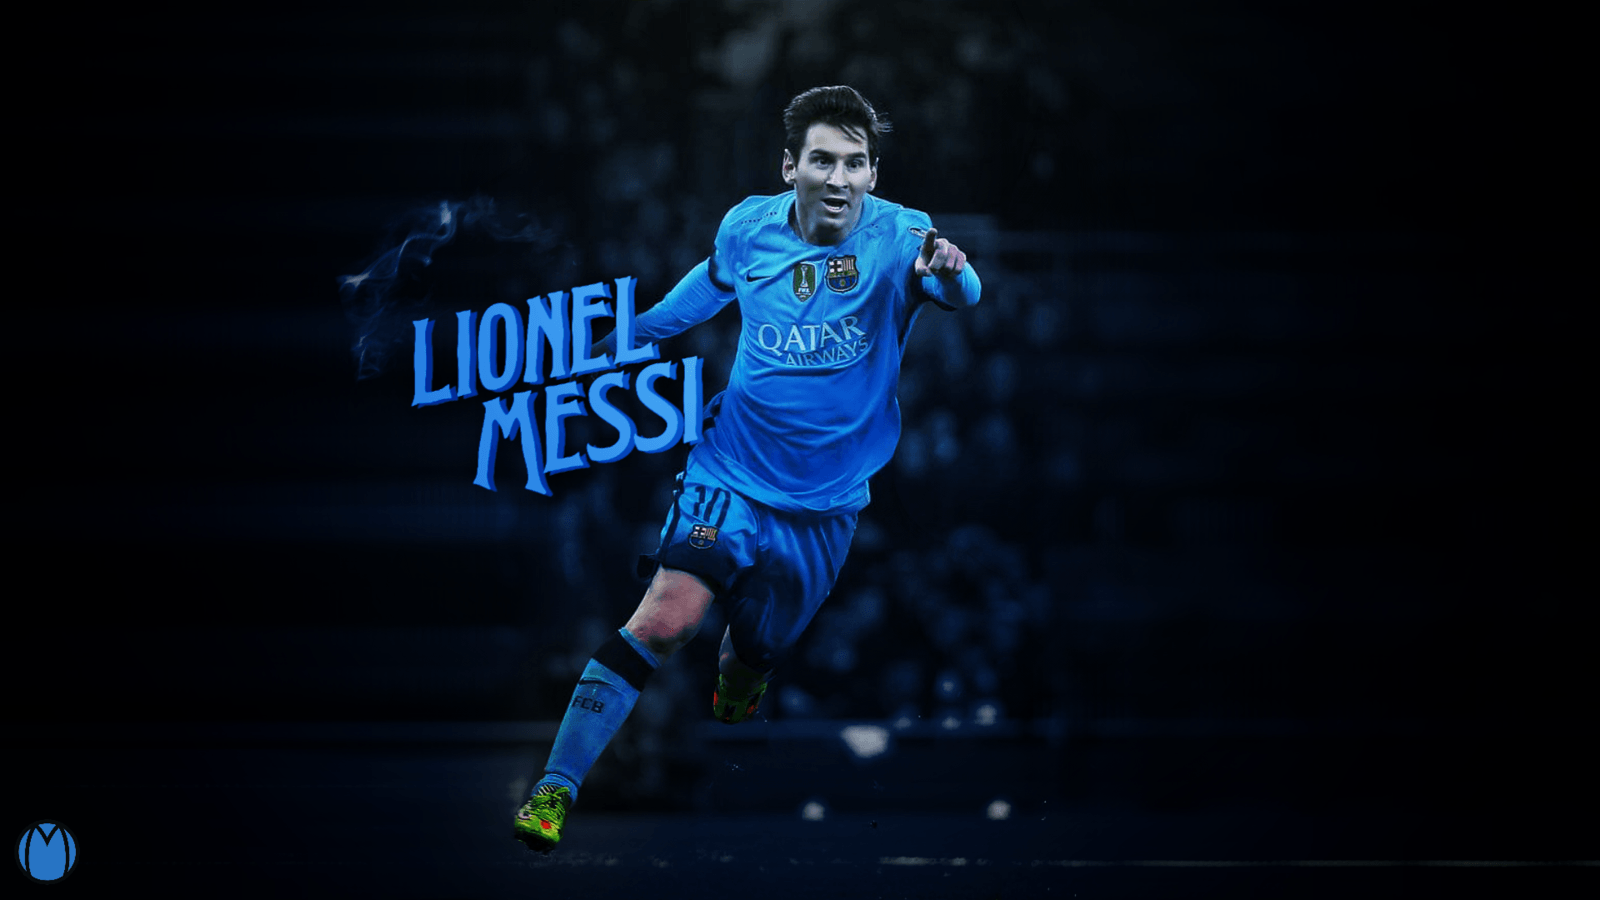 Lionel Messi 2017 Wallpapers 1600x900